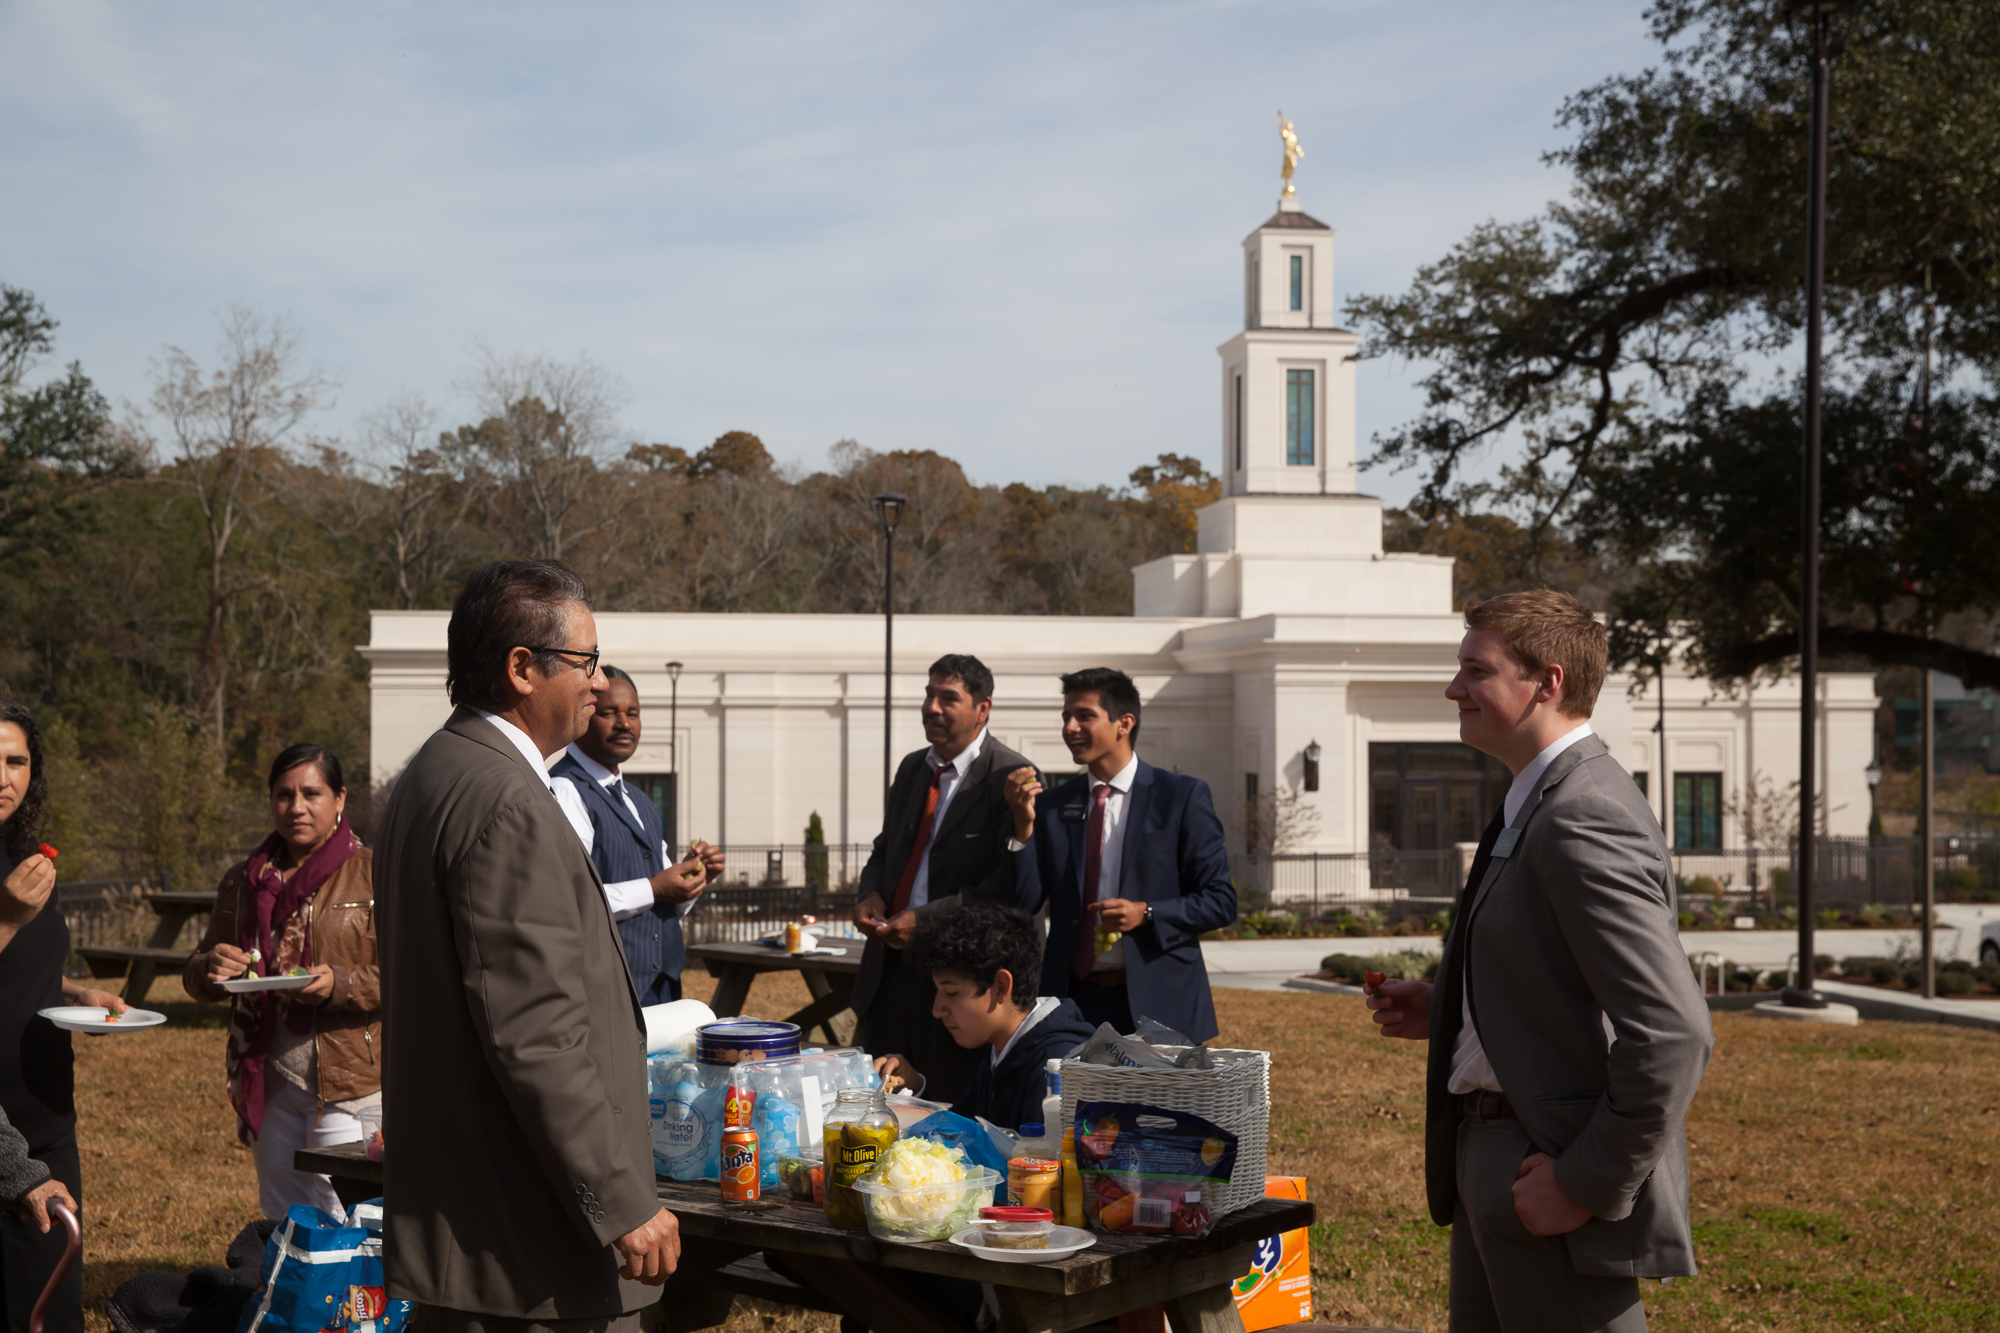 A Latter-day Saint family gathers for a picnic on the grass near the Baton Rouge Louisiana Temple following its rededication on Sunday, Nov. 17, 2019.